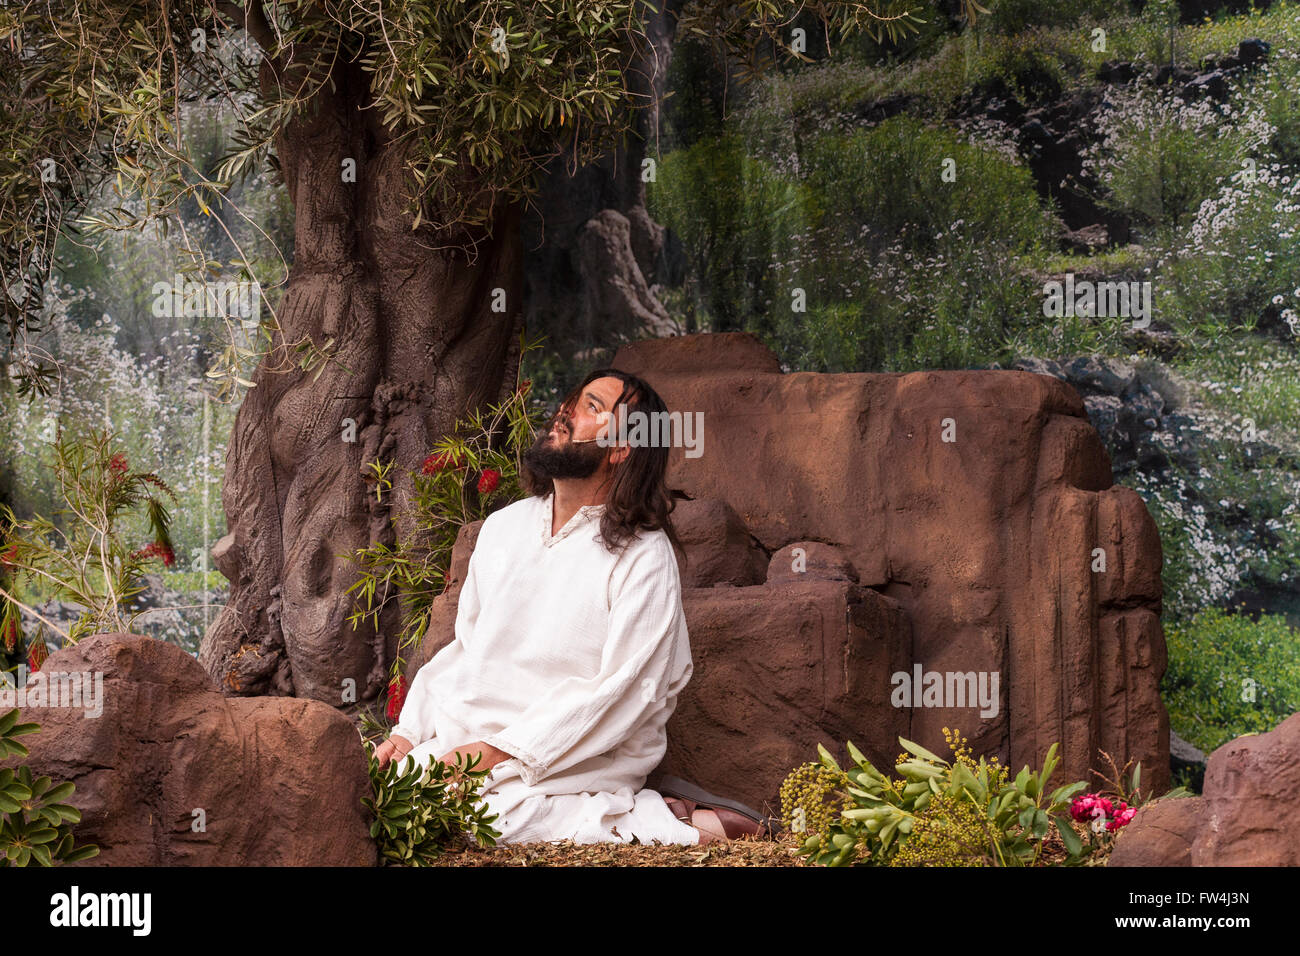 Garden Staging Stock Photos & Garden Staging Stock Images - Alamy